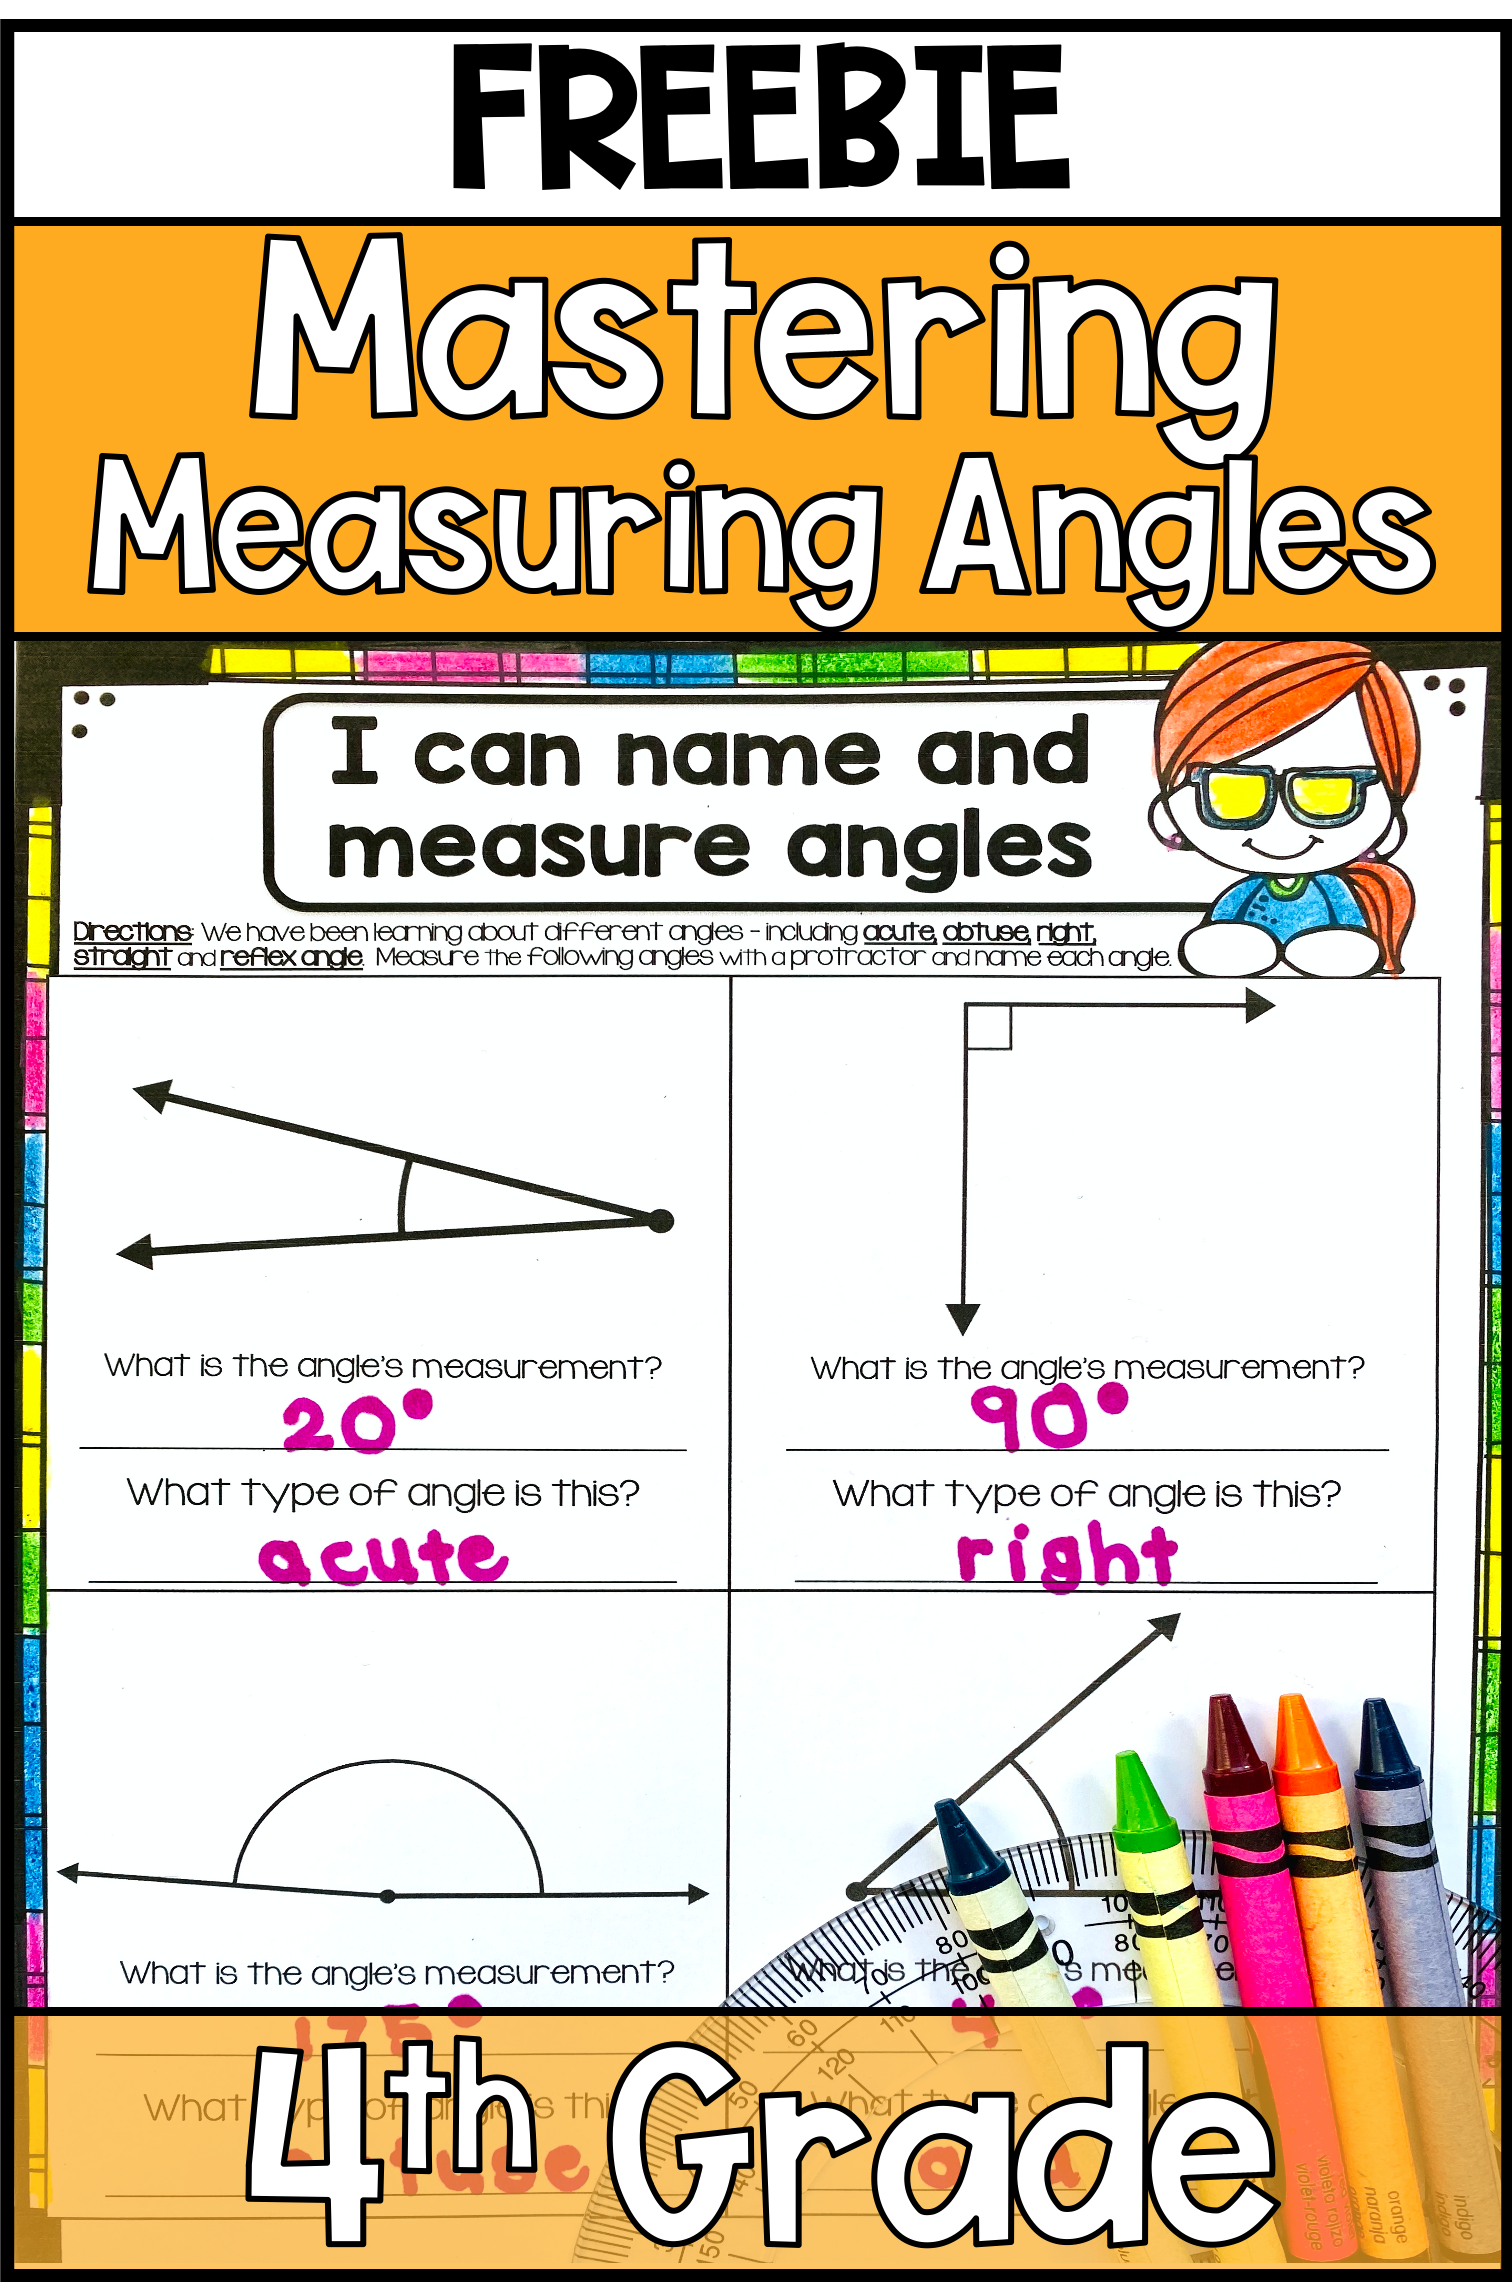 Measuring Angle Tips For Your Fourth Graders With Freebies Math Activities Elementary 4th Grade Math Life Skills Classroom [ 2293 x 1512 Pixel ]